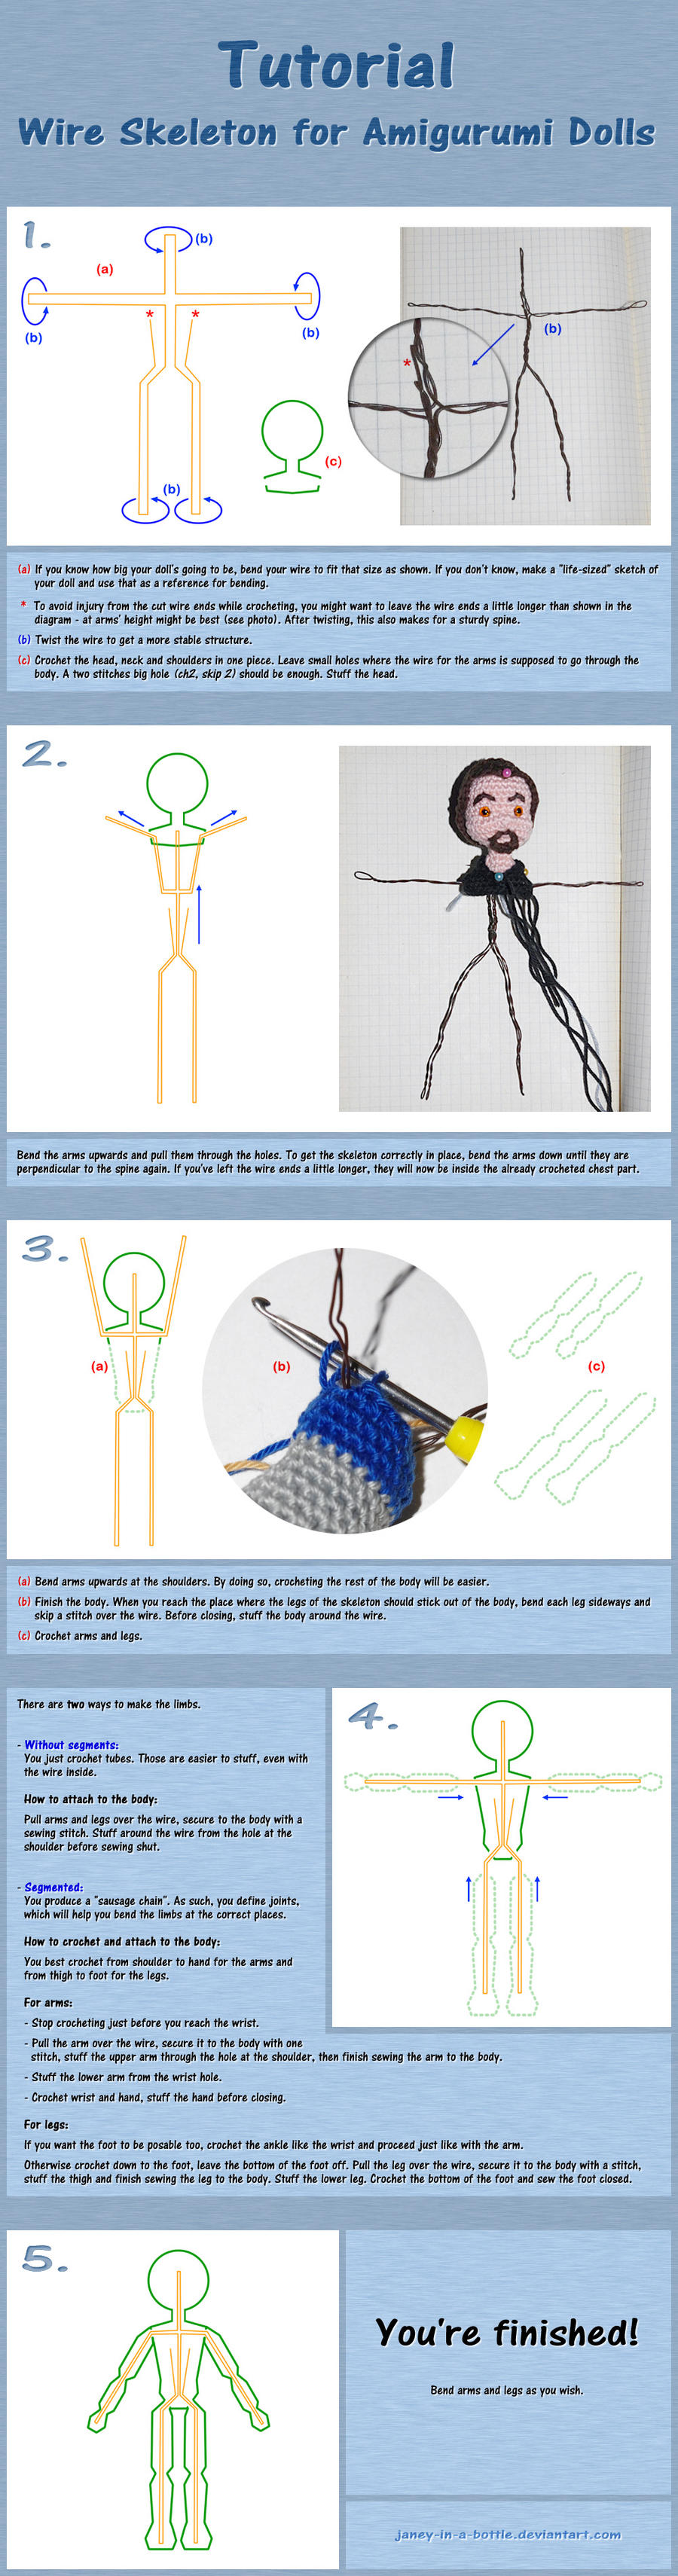 Amigurumi Wire Skeleton : Tutorial: Wire Skeleton For Amigurumi Dolls by janey-in-a ...